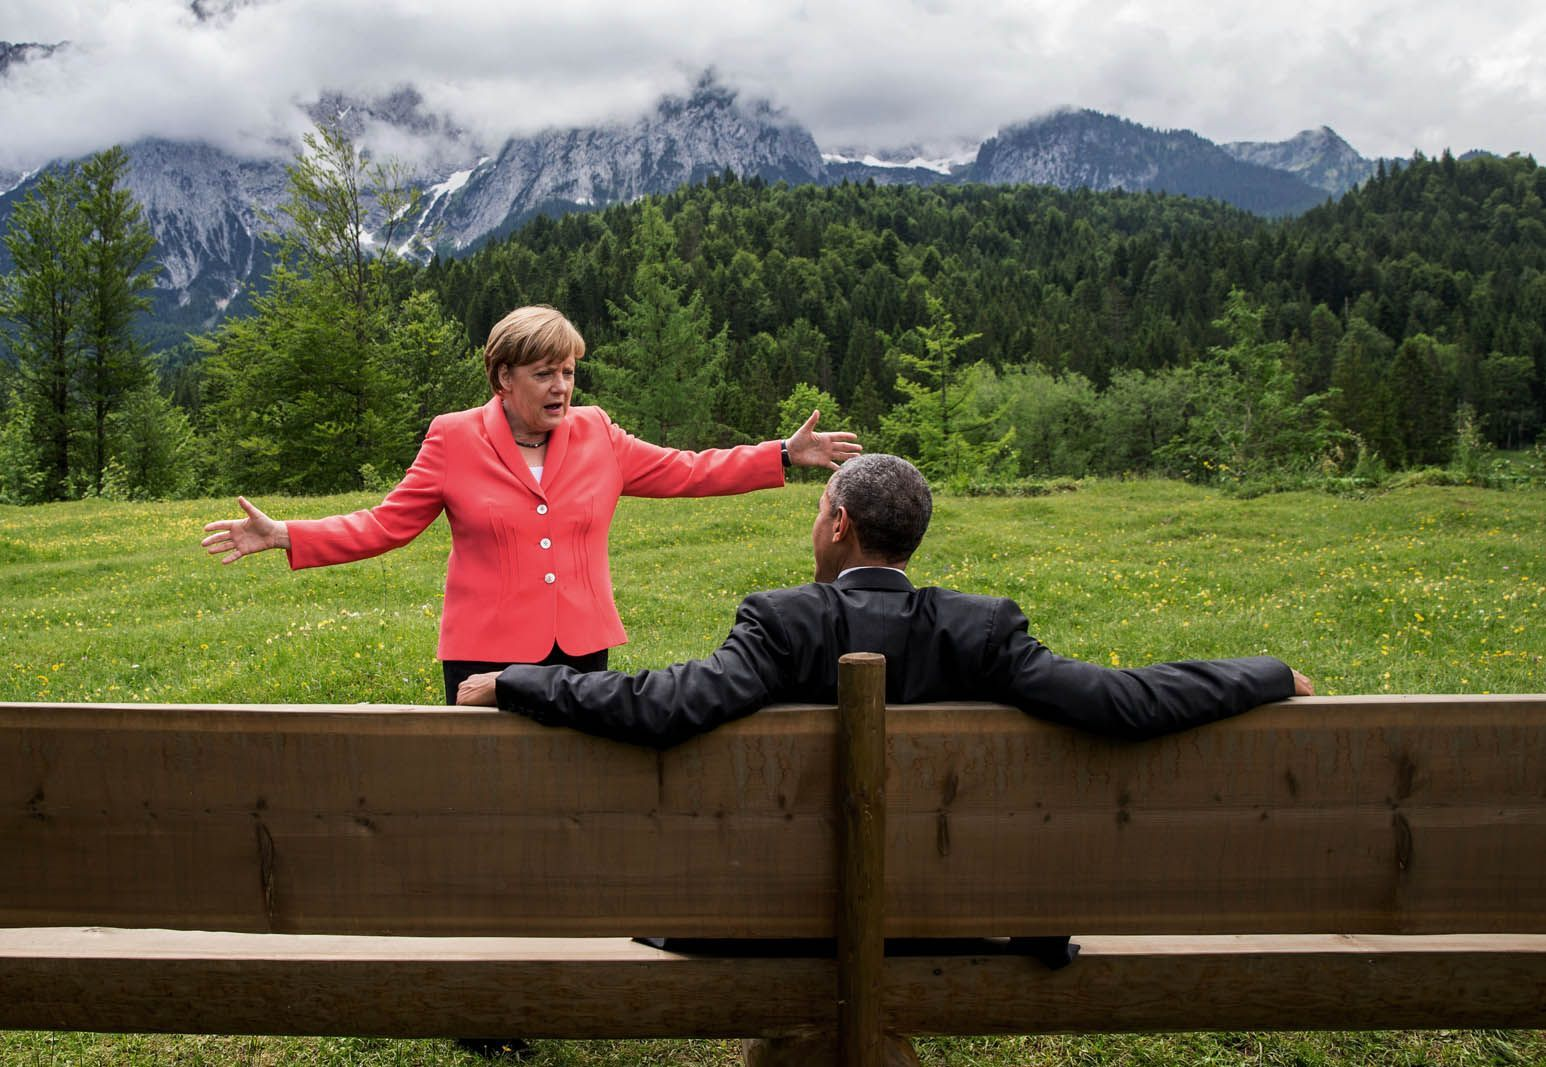 "Photos That Made The World Stand Still In 2015 #refinery29  http://www.refinery29.com/2015/12/99018/end-of-year-photo-slideshow-2015#slide-20  Angela Merkel speaks with Barack Obama during the G7 summit. Time named Merkel its ""Person of the Year"" for 2015, calling the German chancellor ""Europe's most powerful leader."" She is the first woman to win that distinction from the magazine in 30 years. ..."